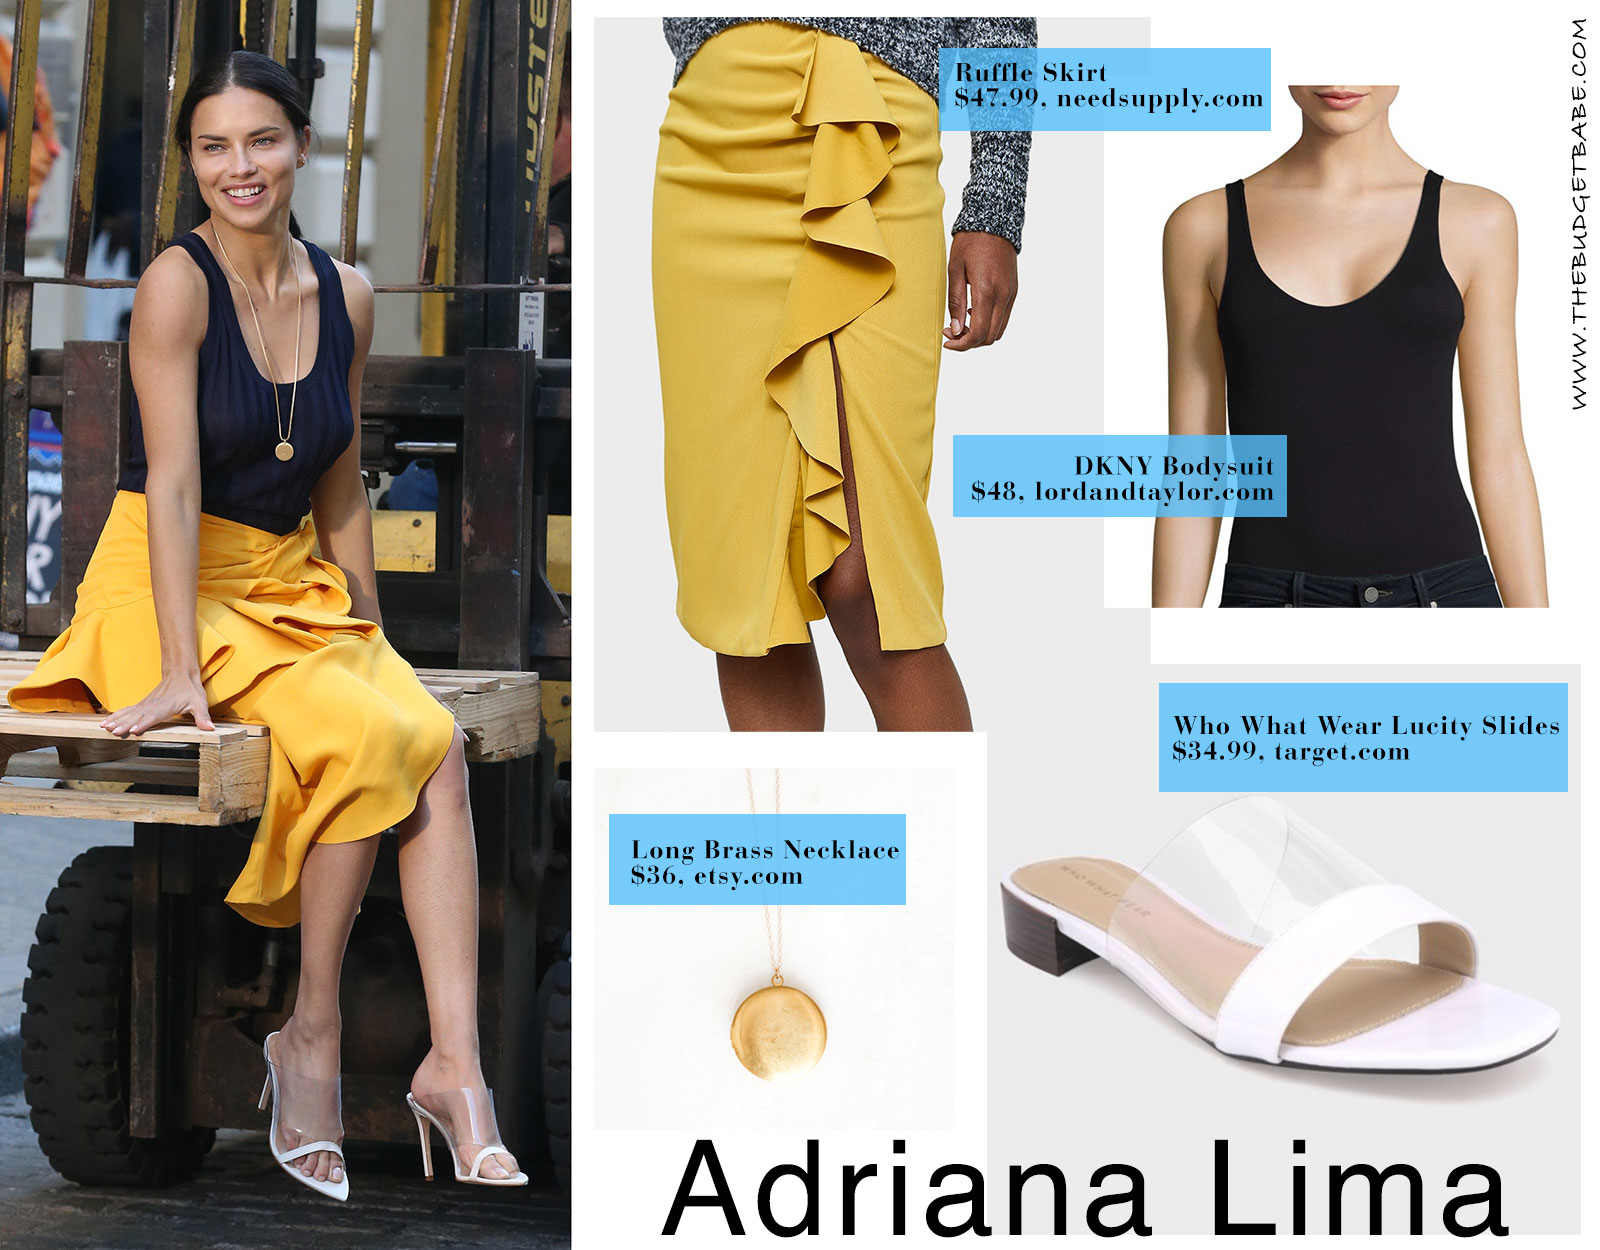 Adriana Lima yellow skirt black bodysuit and transparent slides look for less